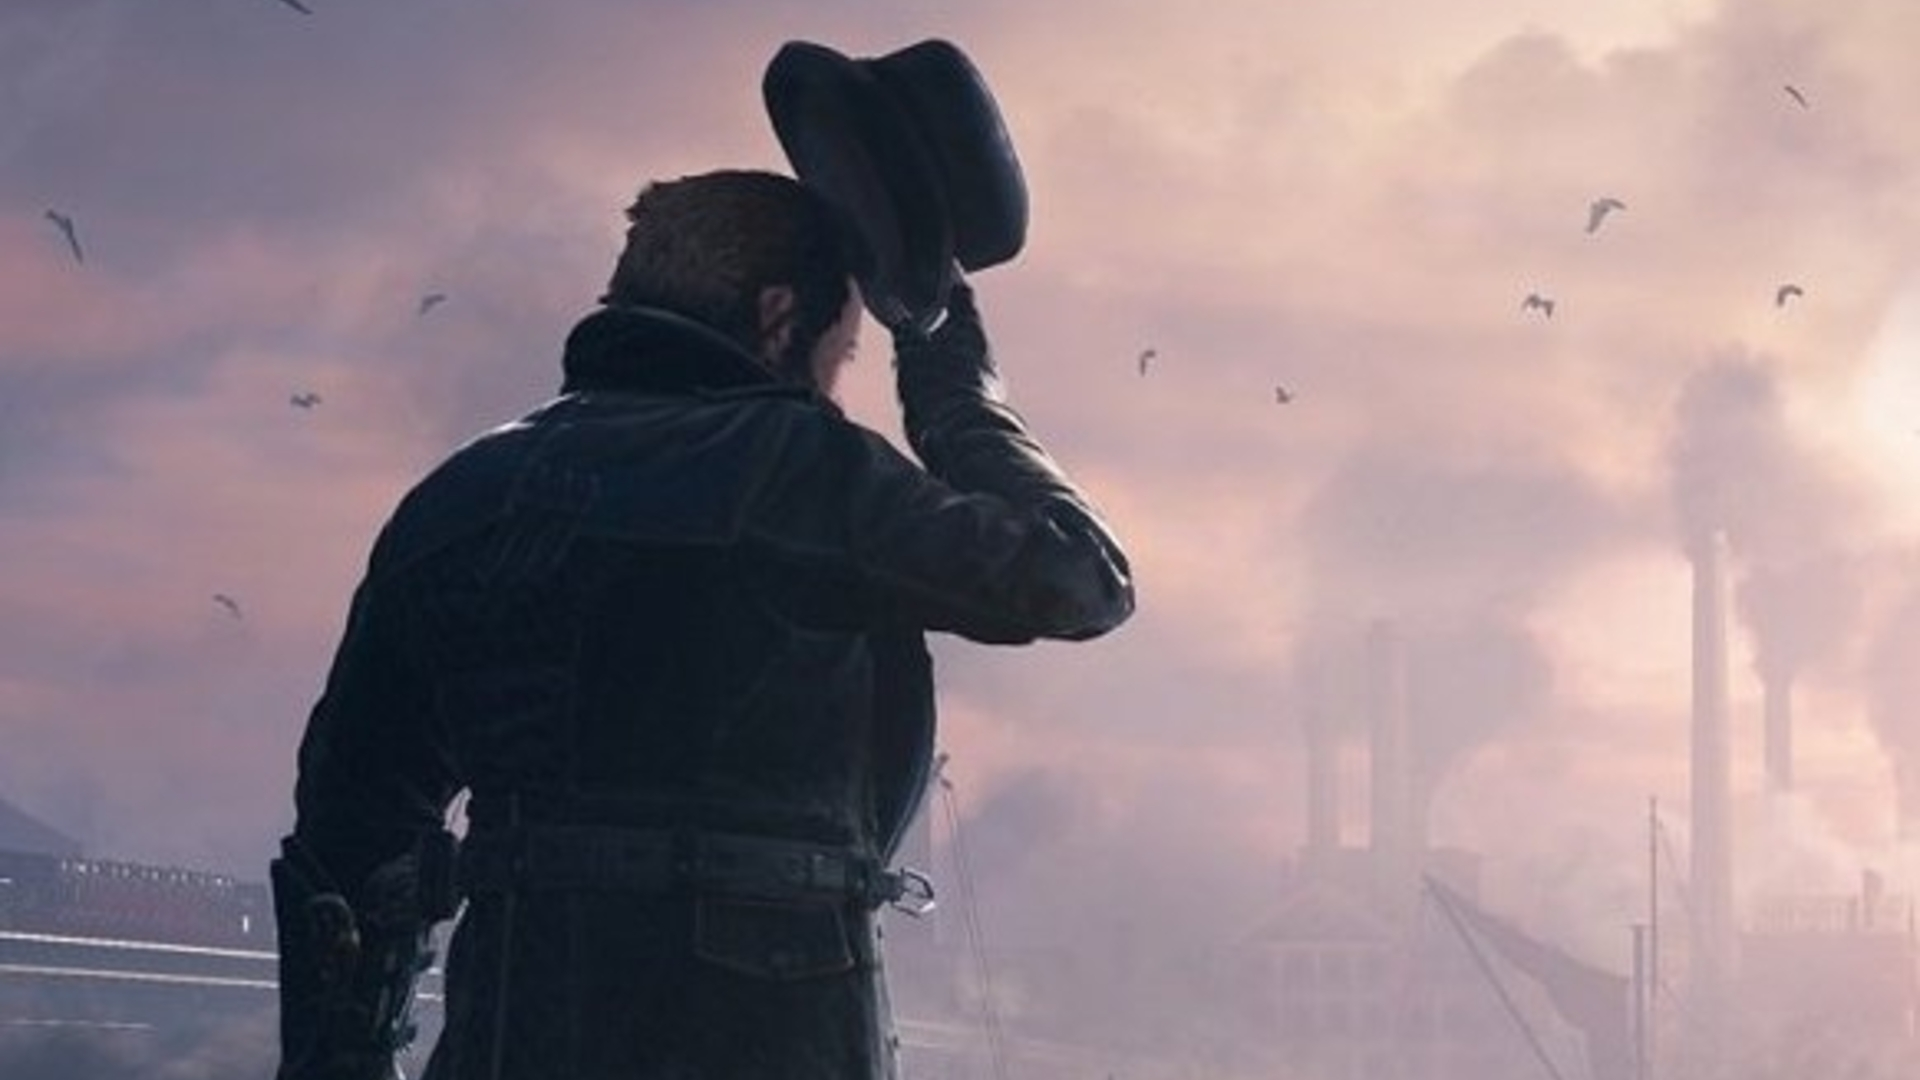 Assassin's Creed: Syndicate has a cool secret Ubisoft hasn't told anyone about